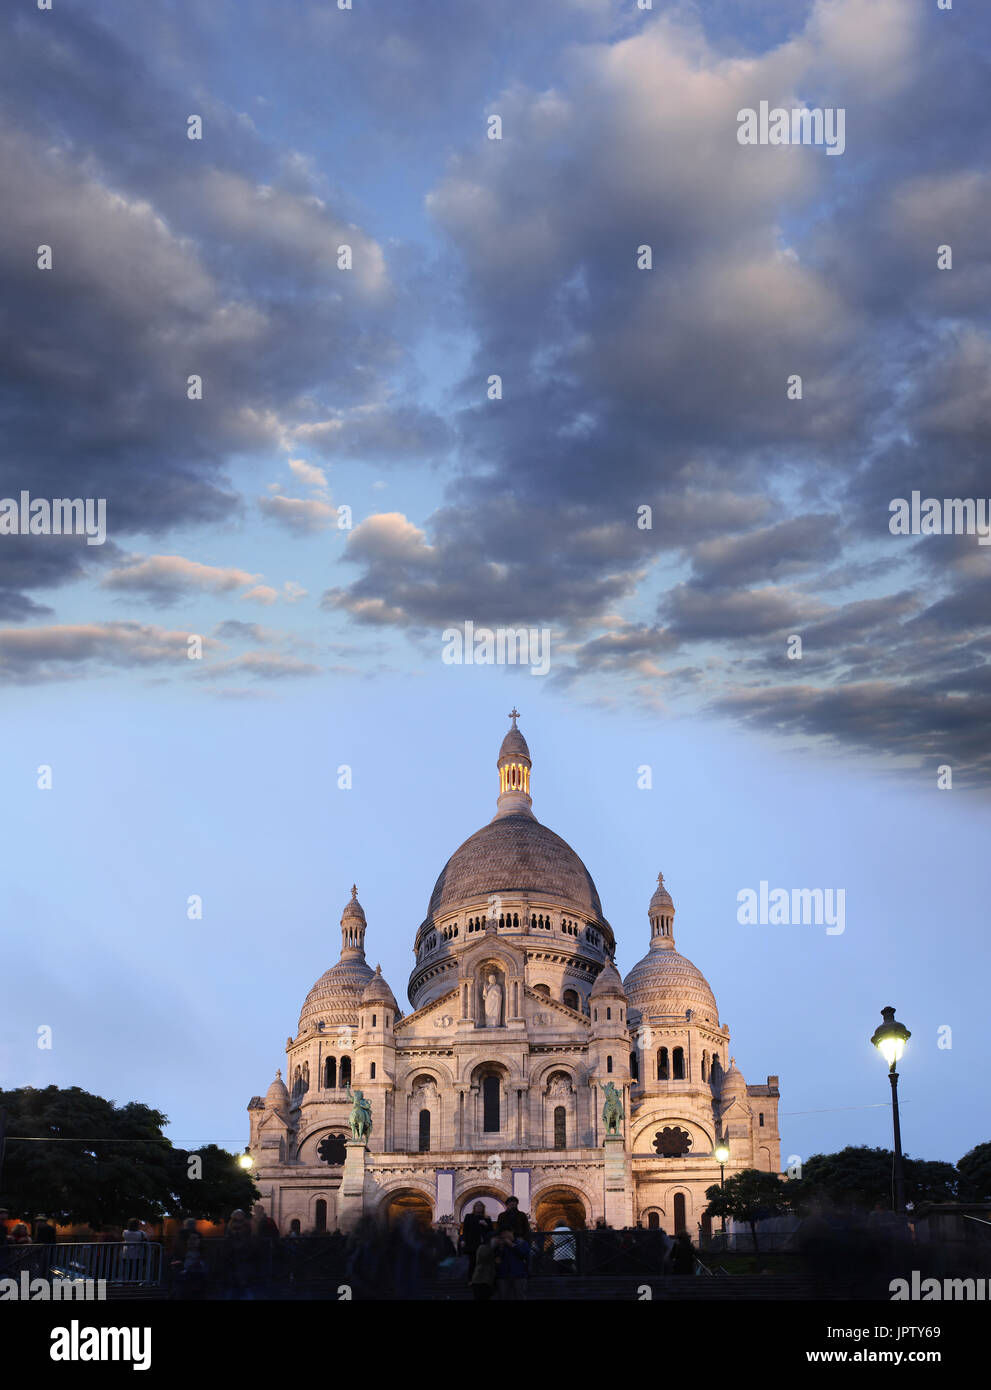 Paris with Basilica of the Sacre Coeur in France - Stock Image